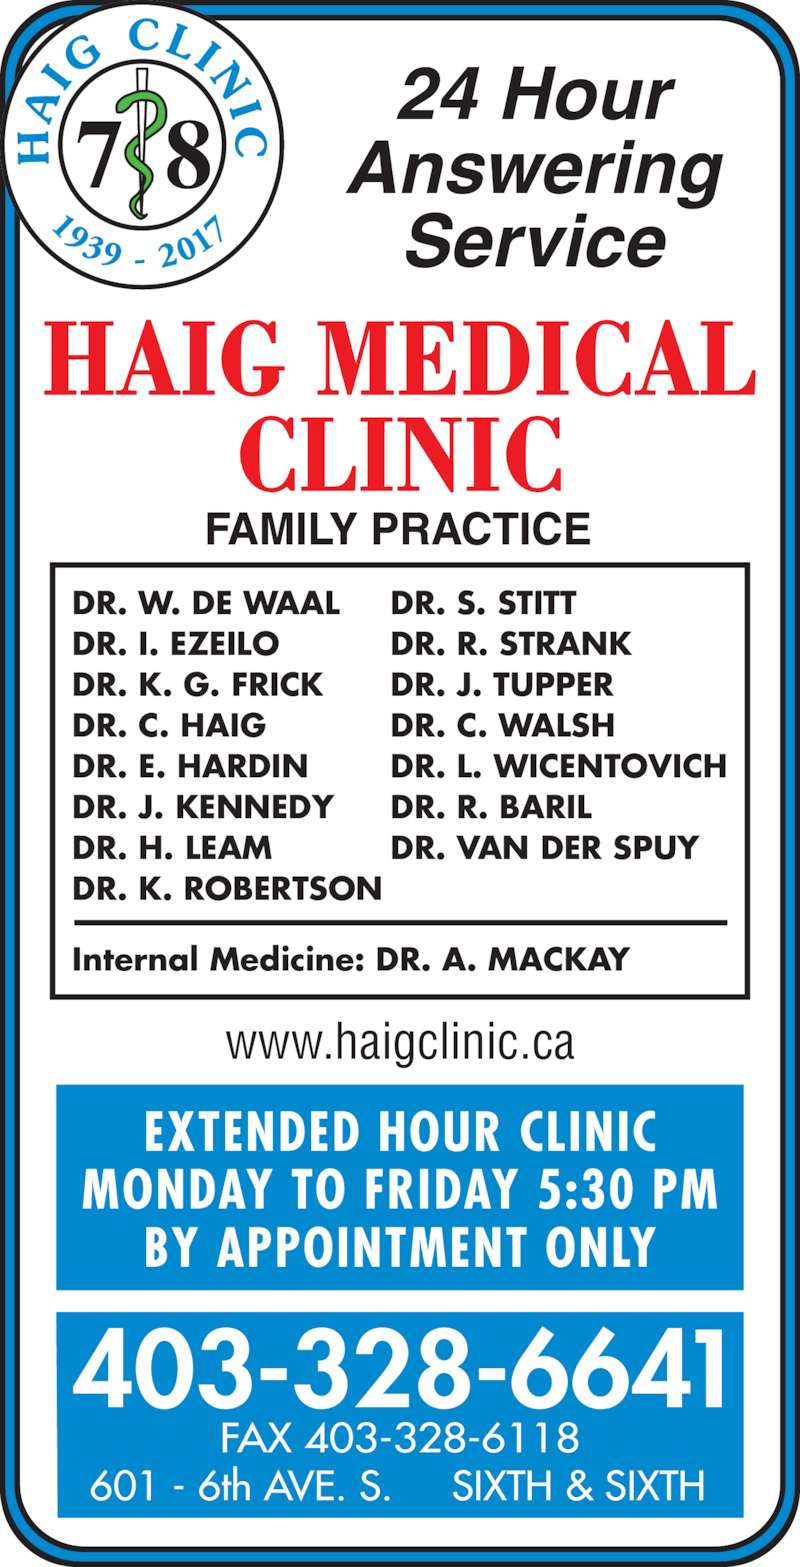 Chinook Primary Care Network (403-328-6641) - Display Ad - EXTENDED HOUR CLINIC MONDAY TO FRIDAY 5:30 PM BY APPOINTMENT ONLY www.haigclinic.ca 403-328-6641 FAX 403-328-6118 601 - 6th AVE. S.     SIXTH & SIXTH 24 Hour Answering Service DR. W. DE WAAL DR. I. EZEILO DR. K. G. FRICK DR. C. HAIG DR. E. HARDIN DR. J. KENNEDY DR. H. LEAM DR. K. ROBERTSON Internal Medicine: DR. A. MACKAY DR. S. STITT DR. R. STRANK DR. J. TUPPER DR. C. WALSH DR. L. WICENTOVICH DR. R. BARIL DR. VAN DER SPUY 7 8 1939 -  201 IG  CLIN I C